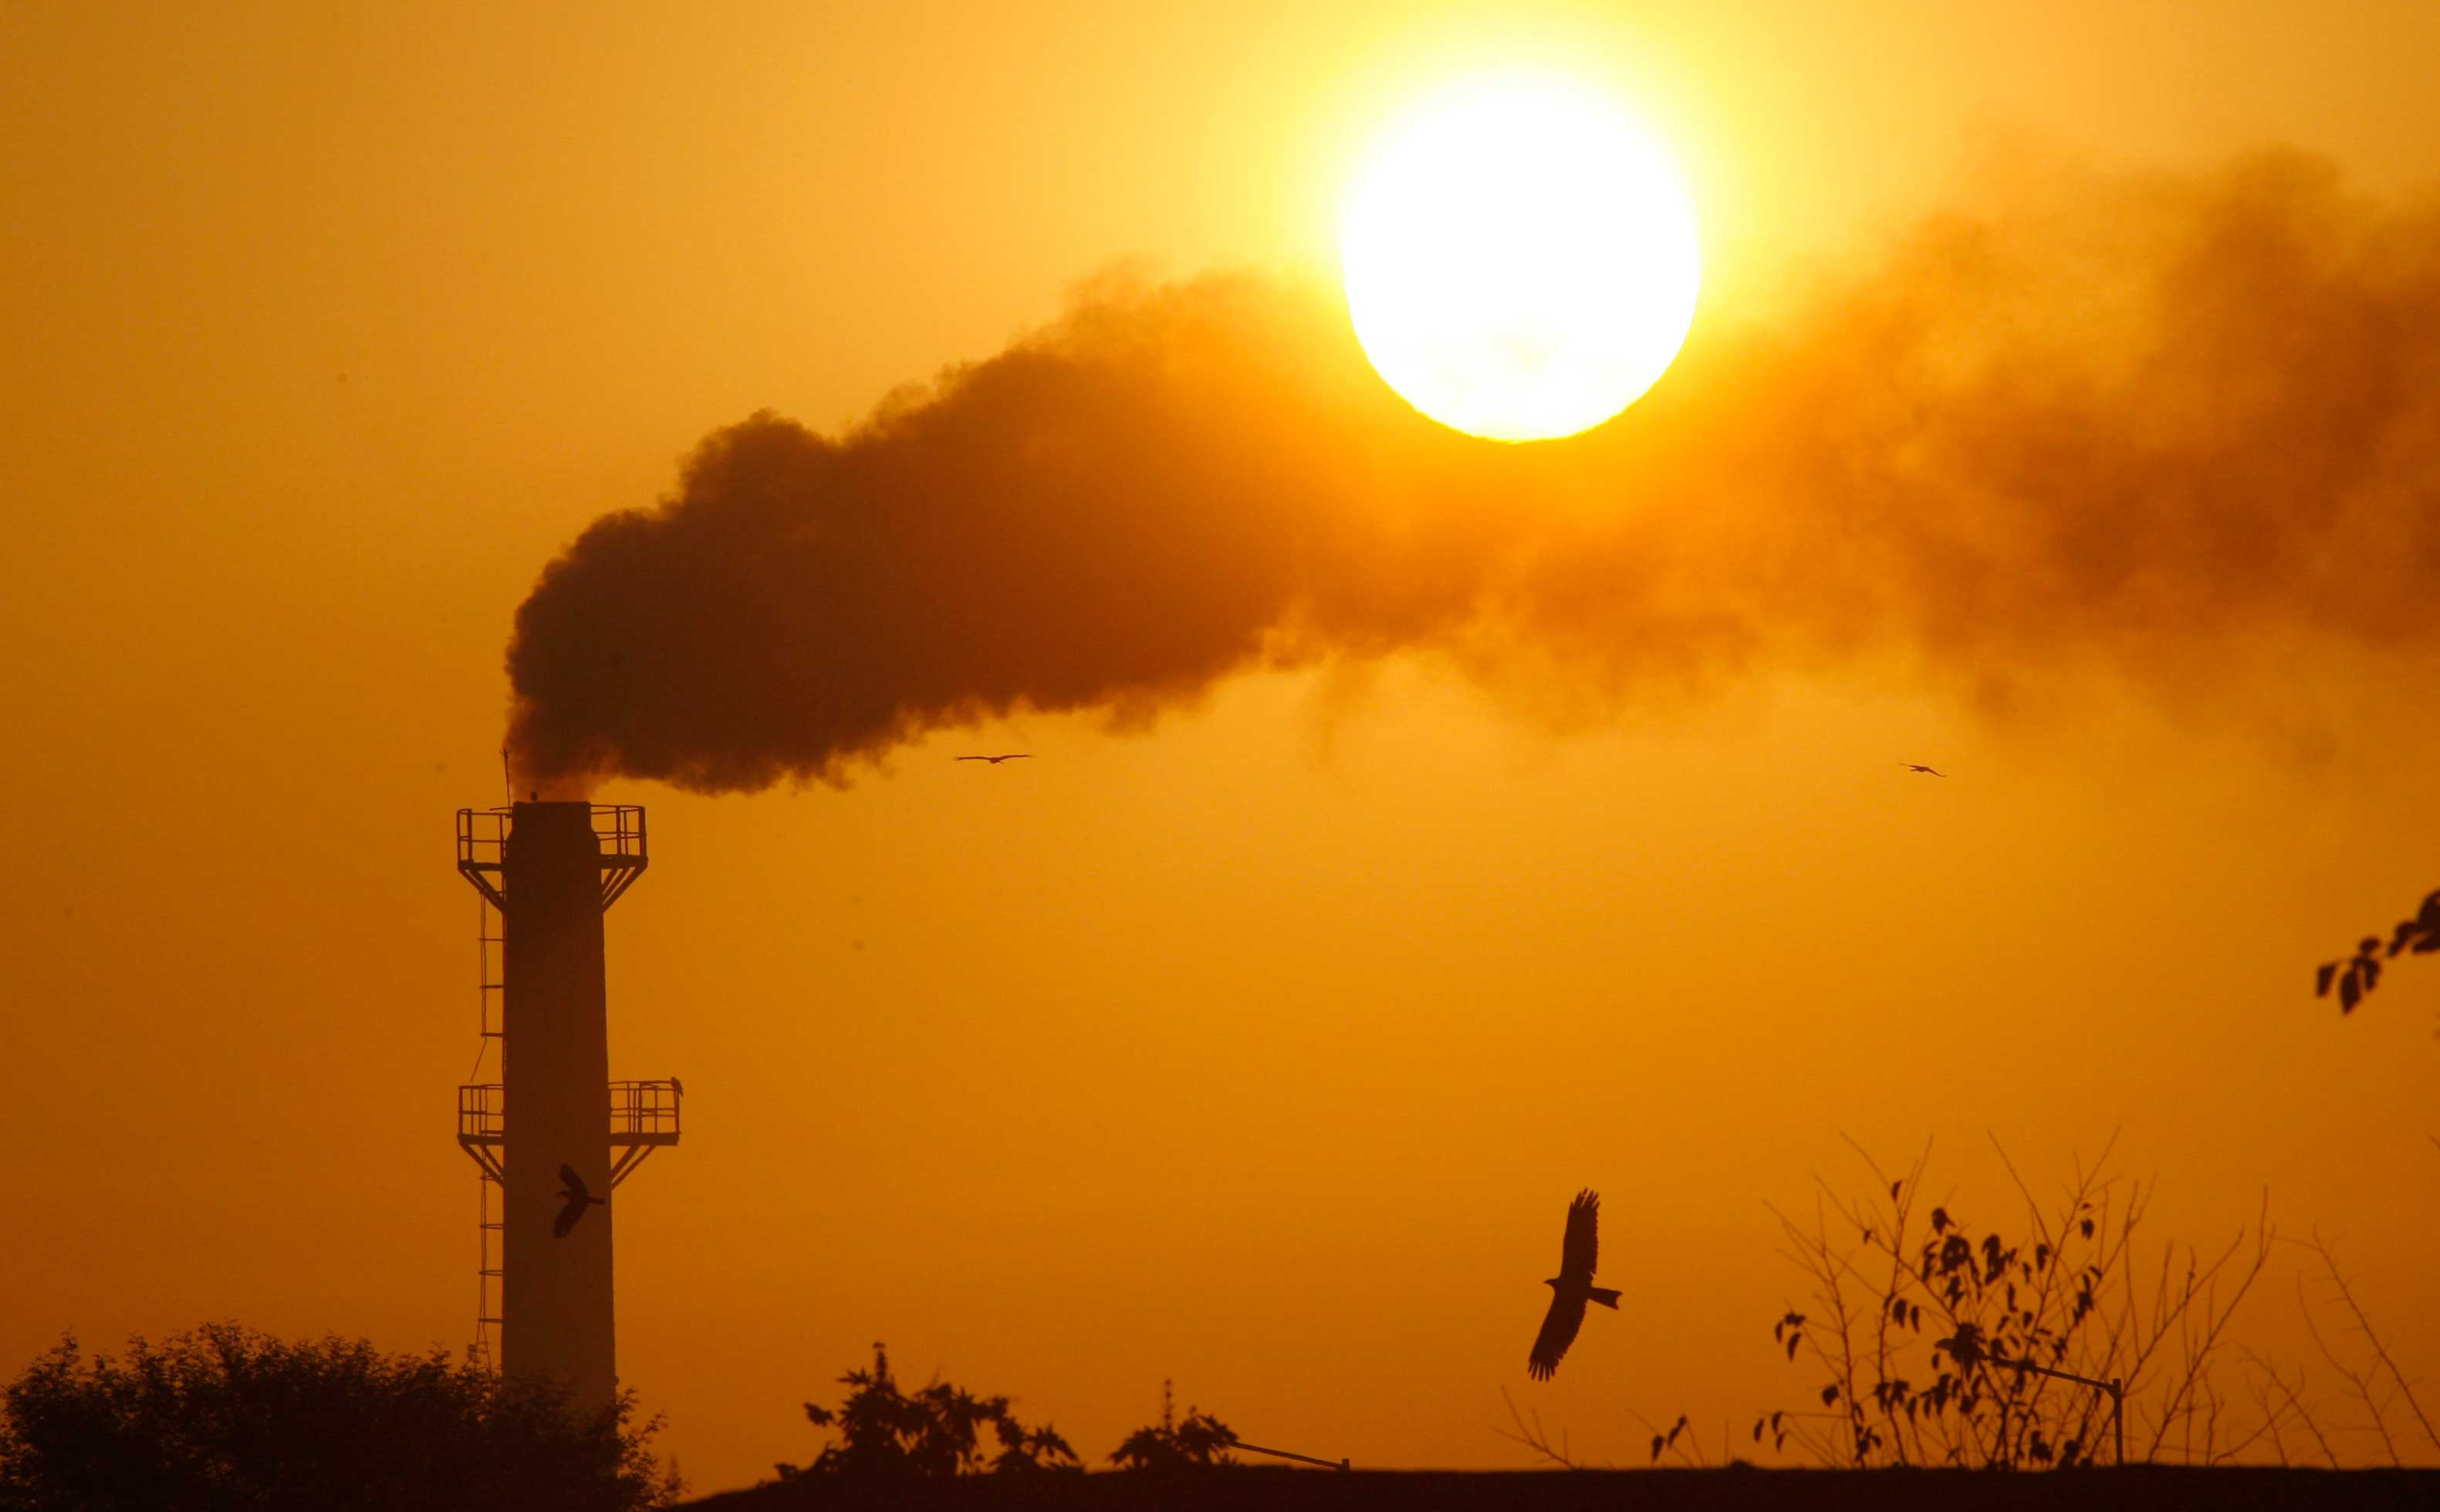 India commits 33-35% cut in carbon intensity by 2030